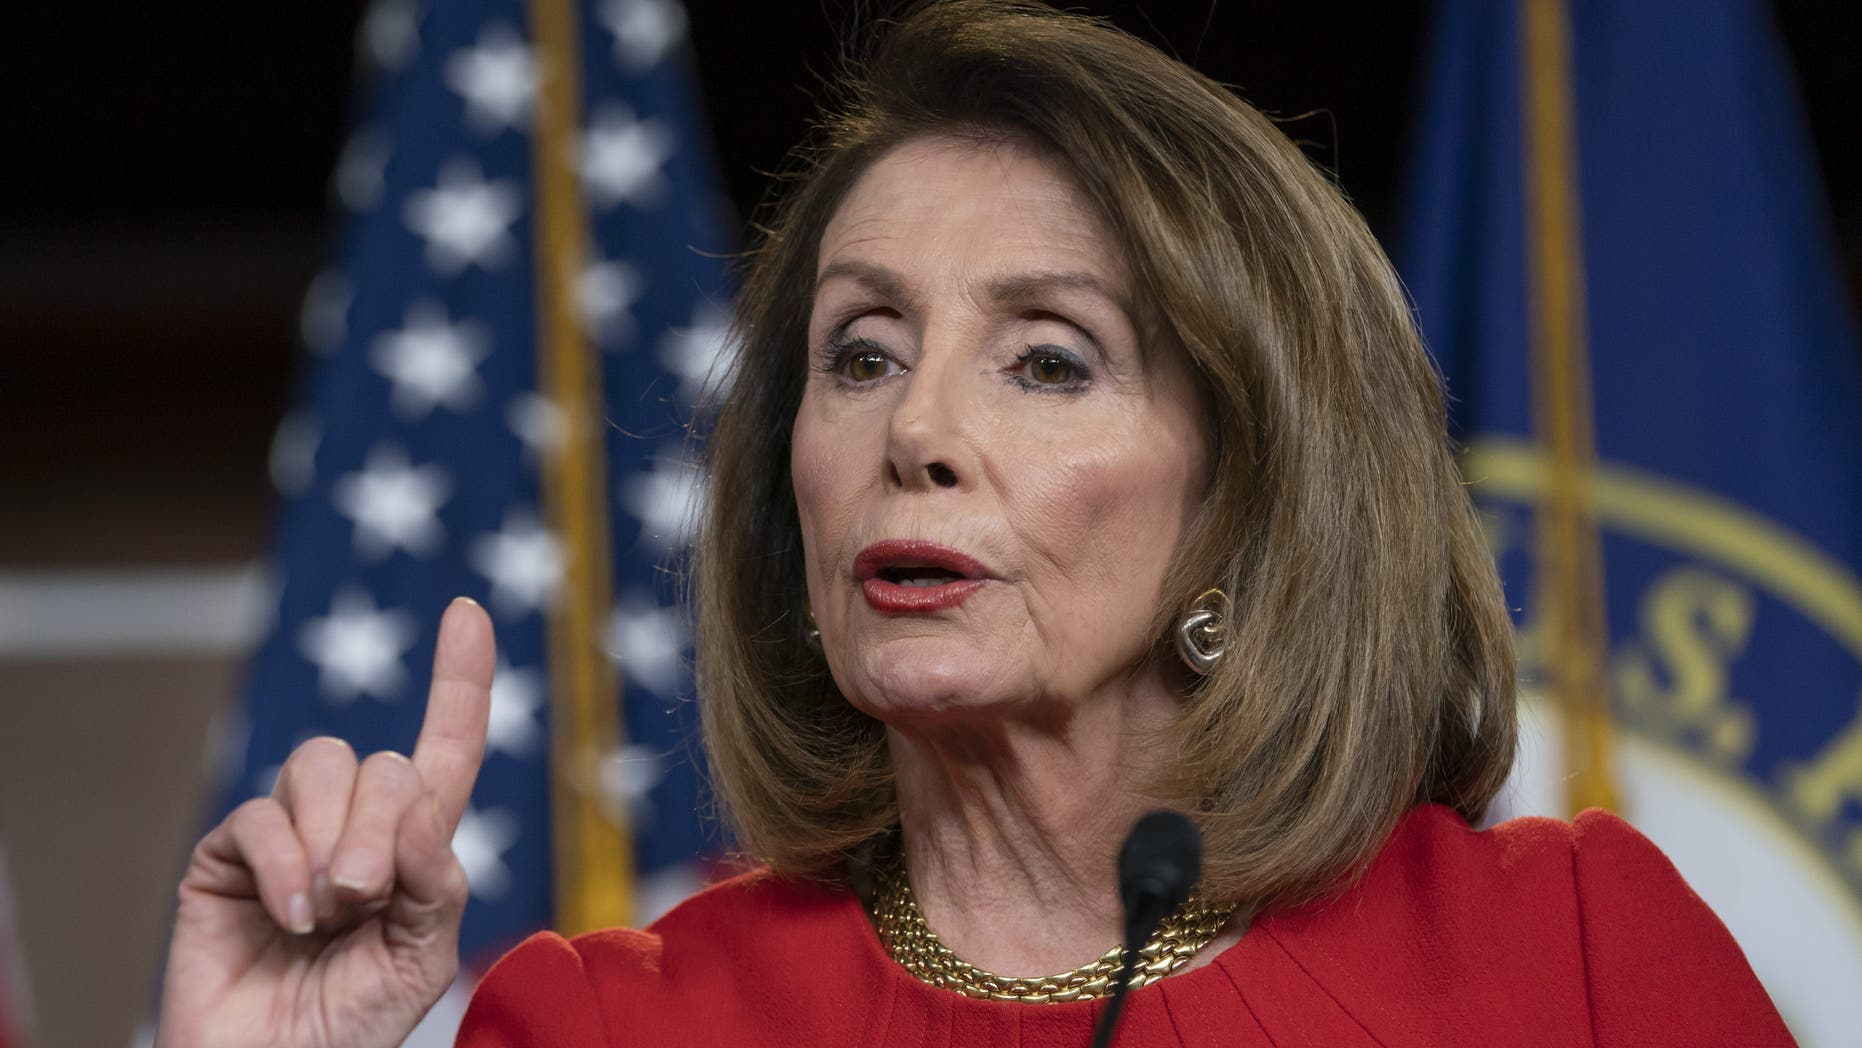 Westlake Legal Group AP19094583990857-e1556565313649 Pelosi, Schumer eye 'massive' infrastructure package ahead of Trump sit-down fox-news/us/infrastructure-across-america fox-news/politics/house-of-representatives/democrats fox-news/politics/executive/white-house fox-news/person/nancy-pelosi fox-news/person/donald-trump fox-news/person/chuck-schumer fox news fnc/politics fnc article Alex Pappas ad2c8fa7-c221-5b94-b006-bbc14cc5df1e